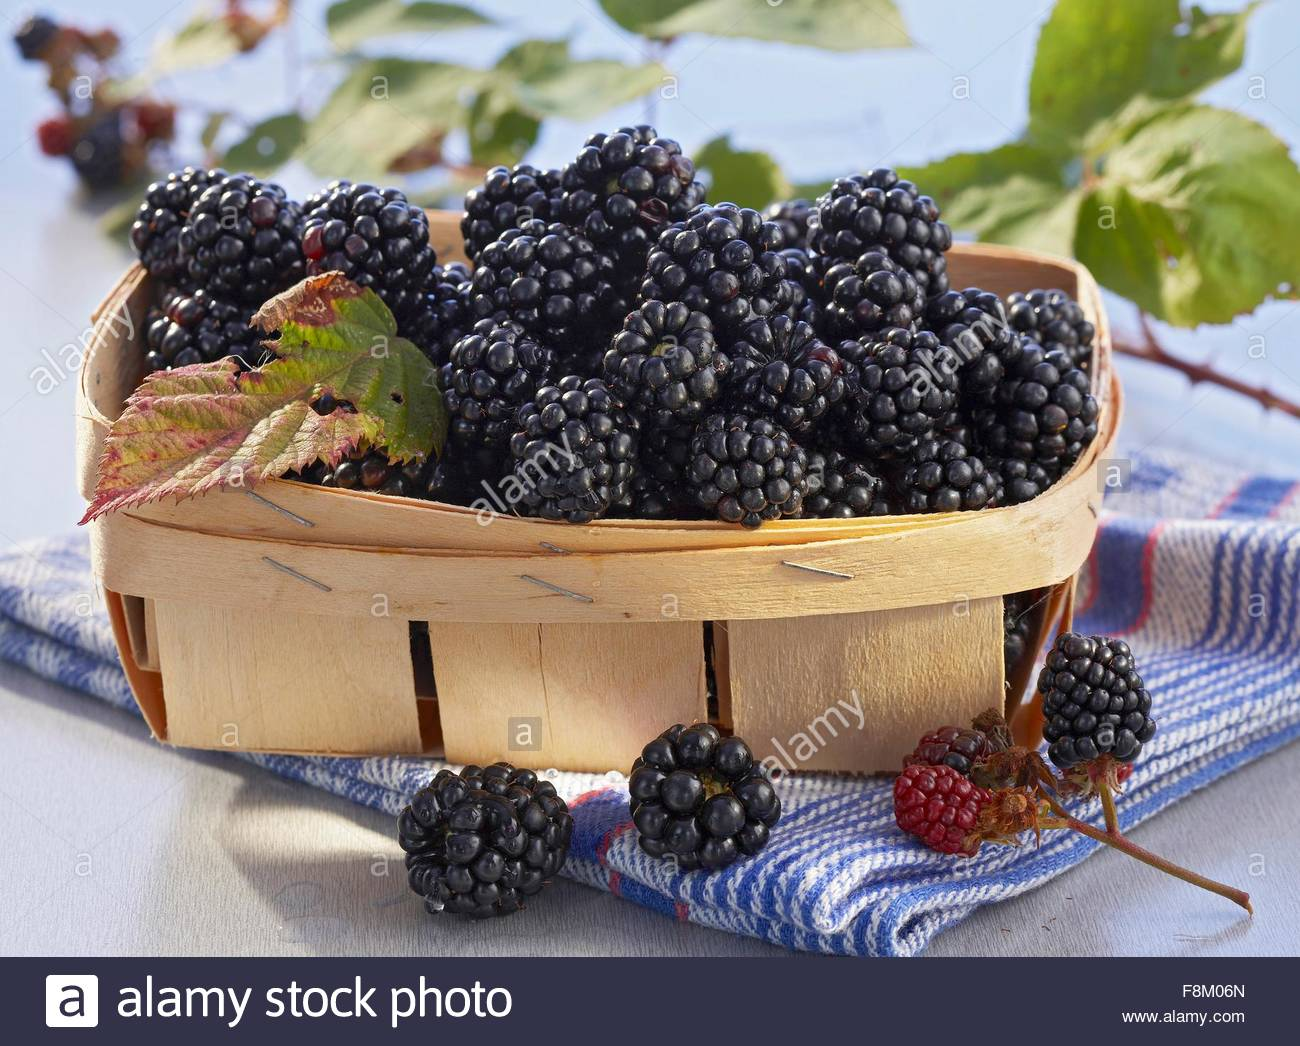 Blackberries in a woven chip basket - Stock Image